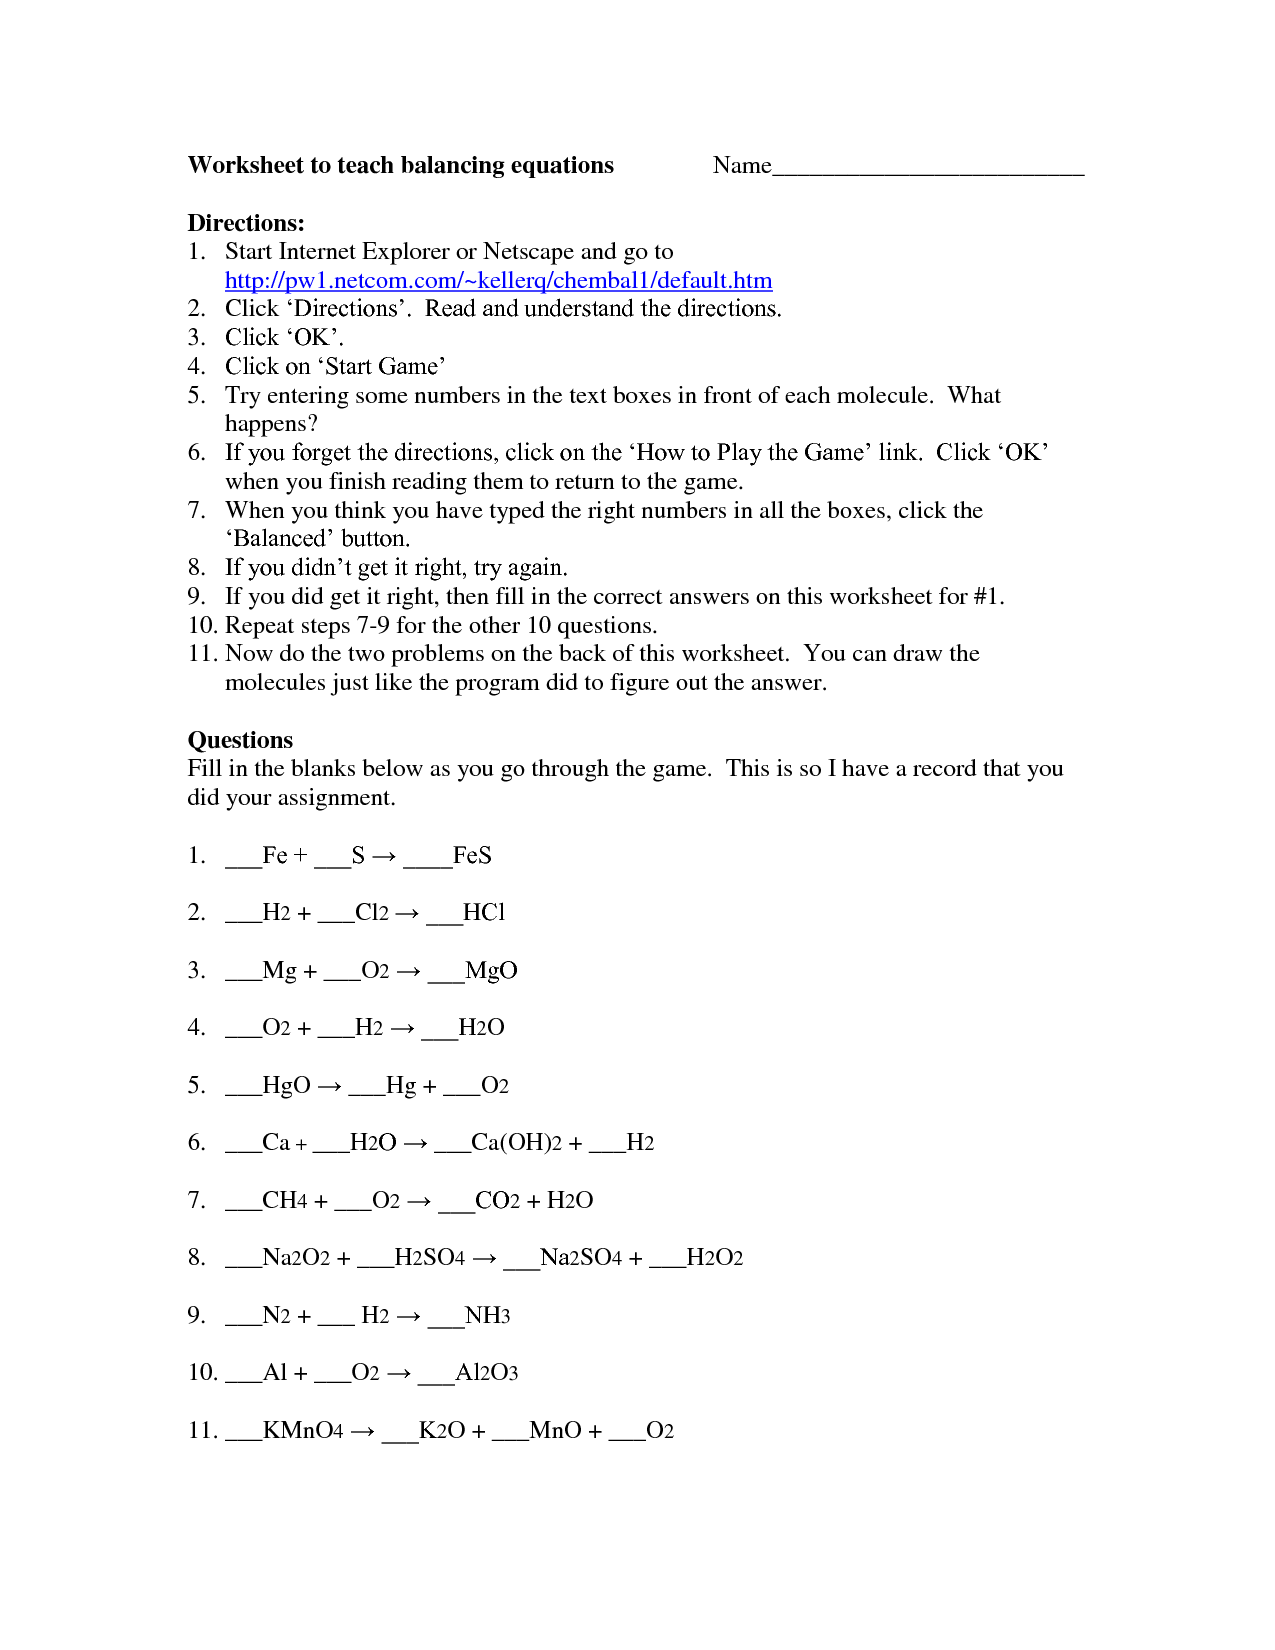 Balancing Equations Race Worksheet Questions